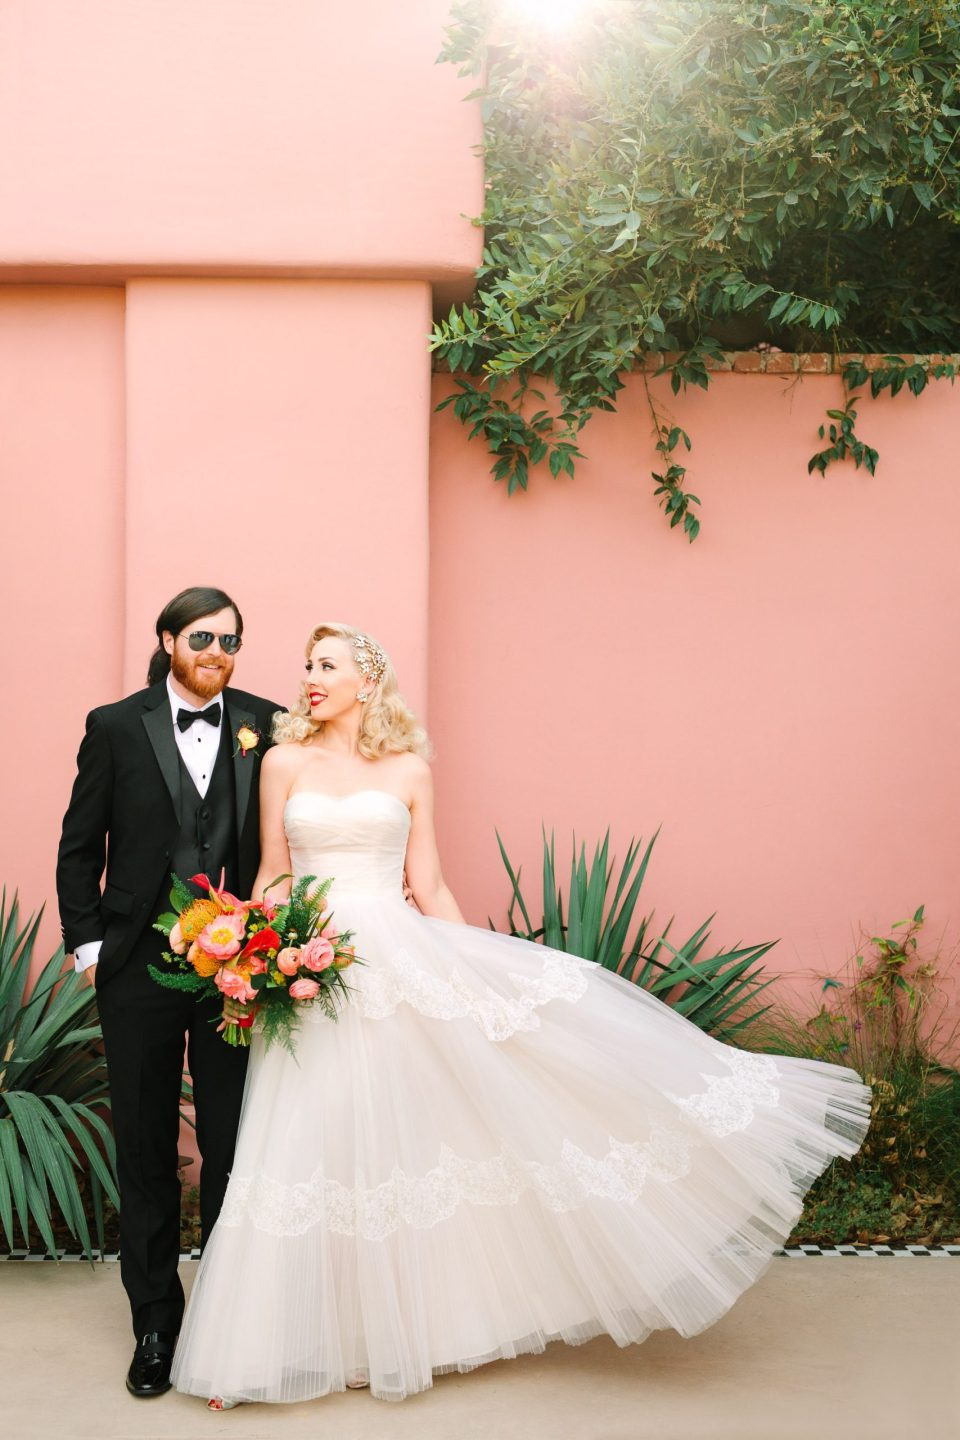 Wedding couple at pink Sands Hotel by Mary Costa Photography